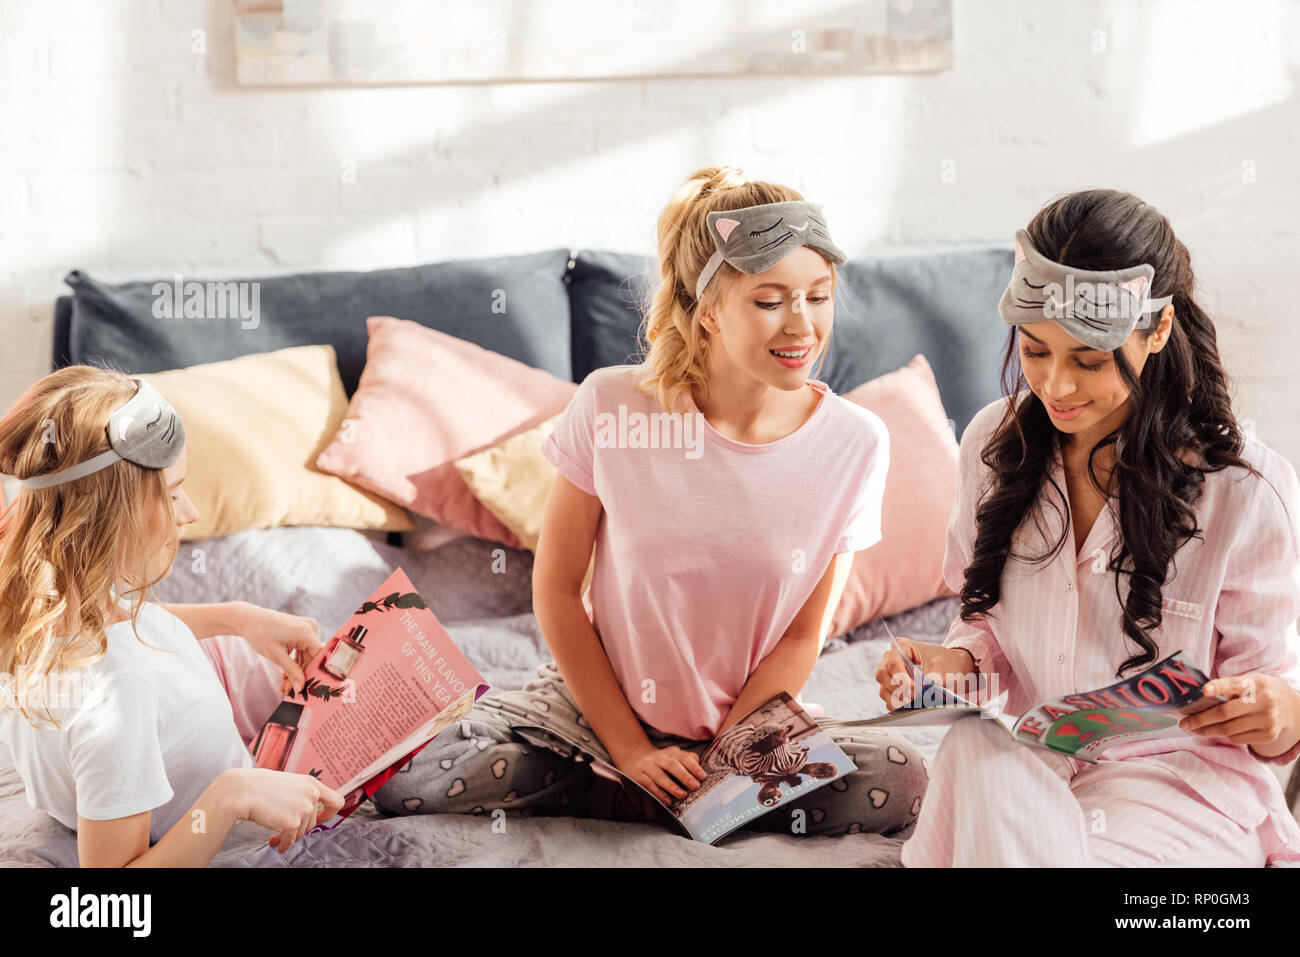 beautiful multicultural girls in sleeping masks reading magazines during pajama party - Stock Image